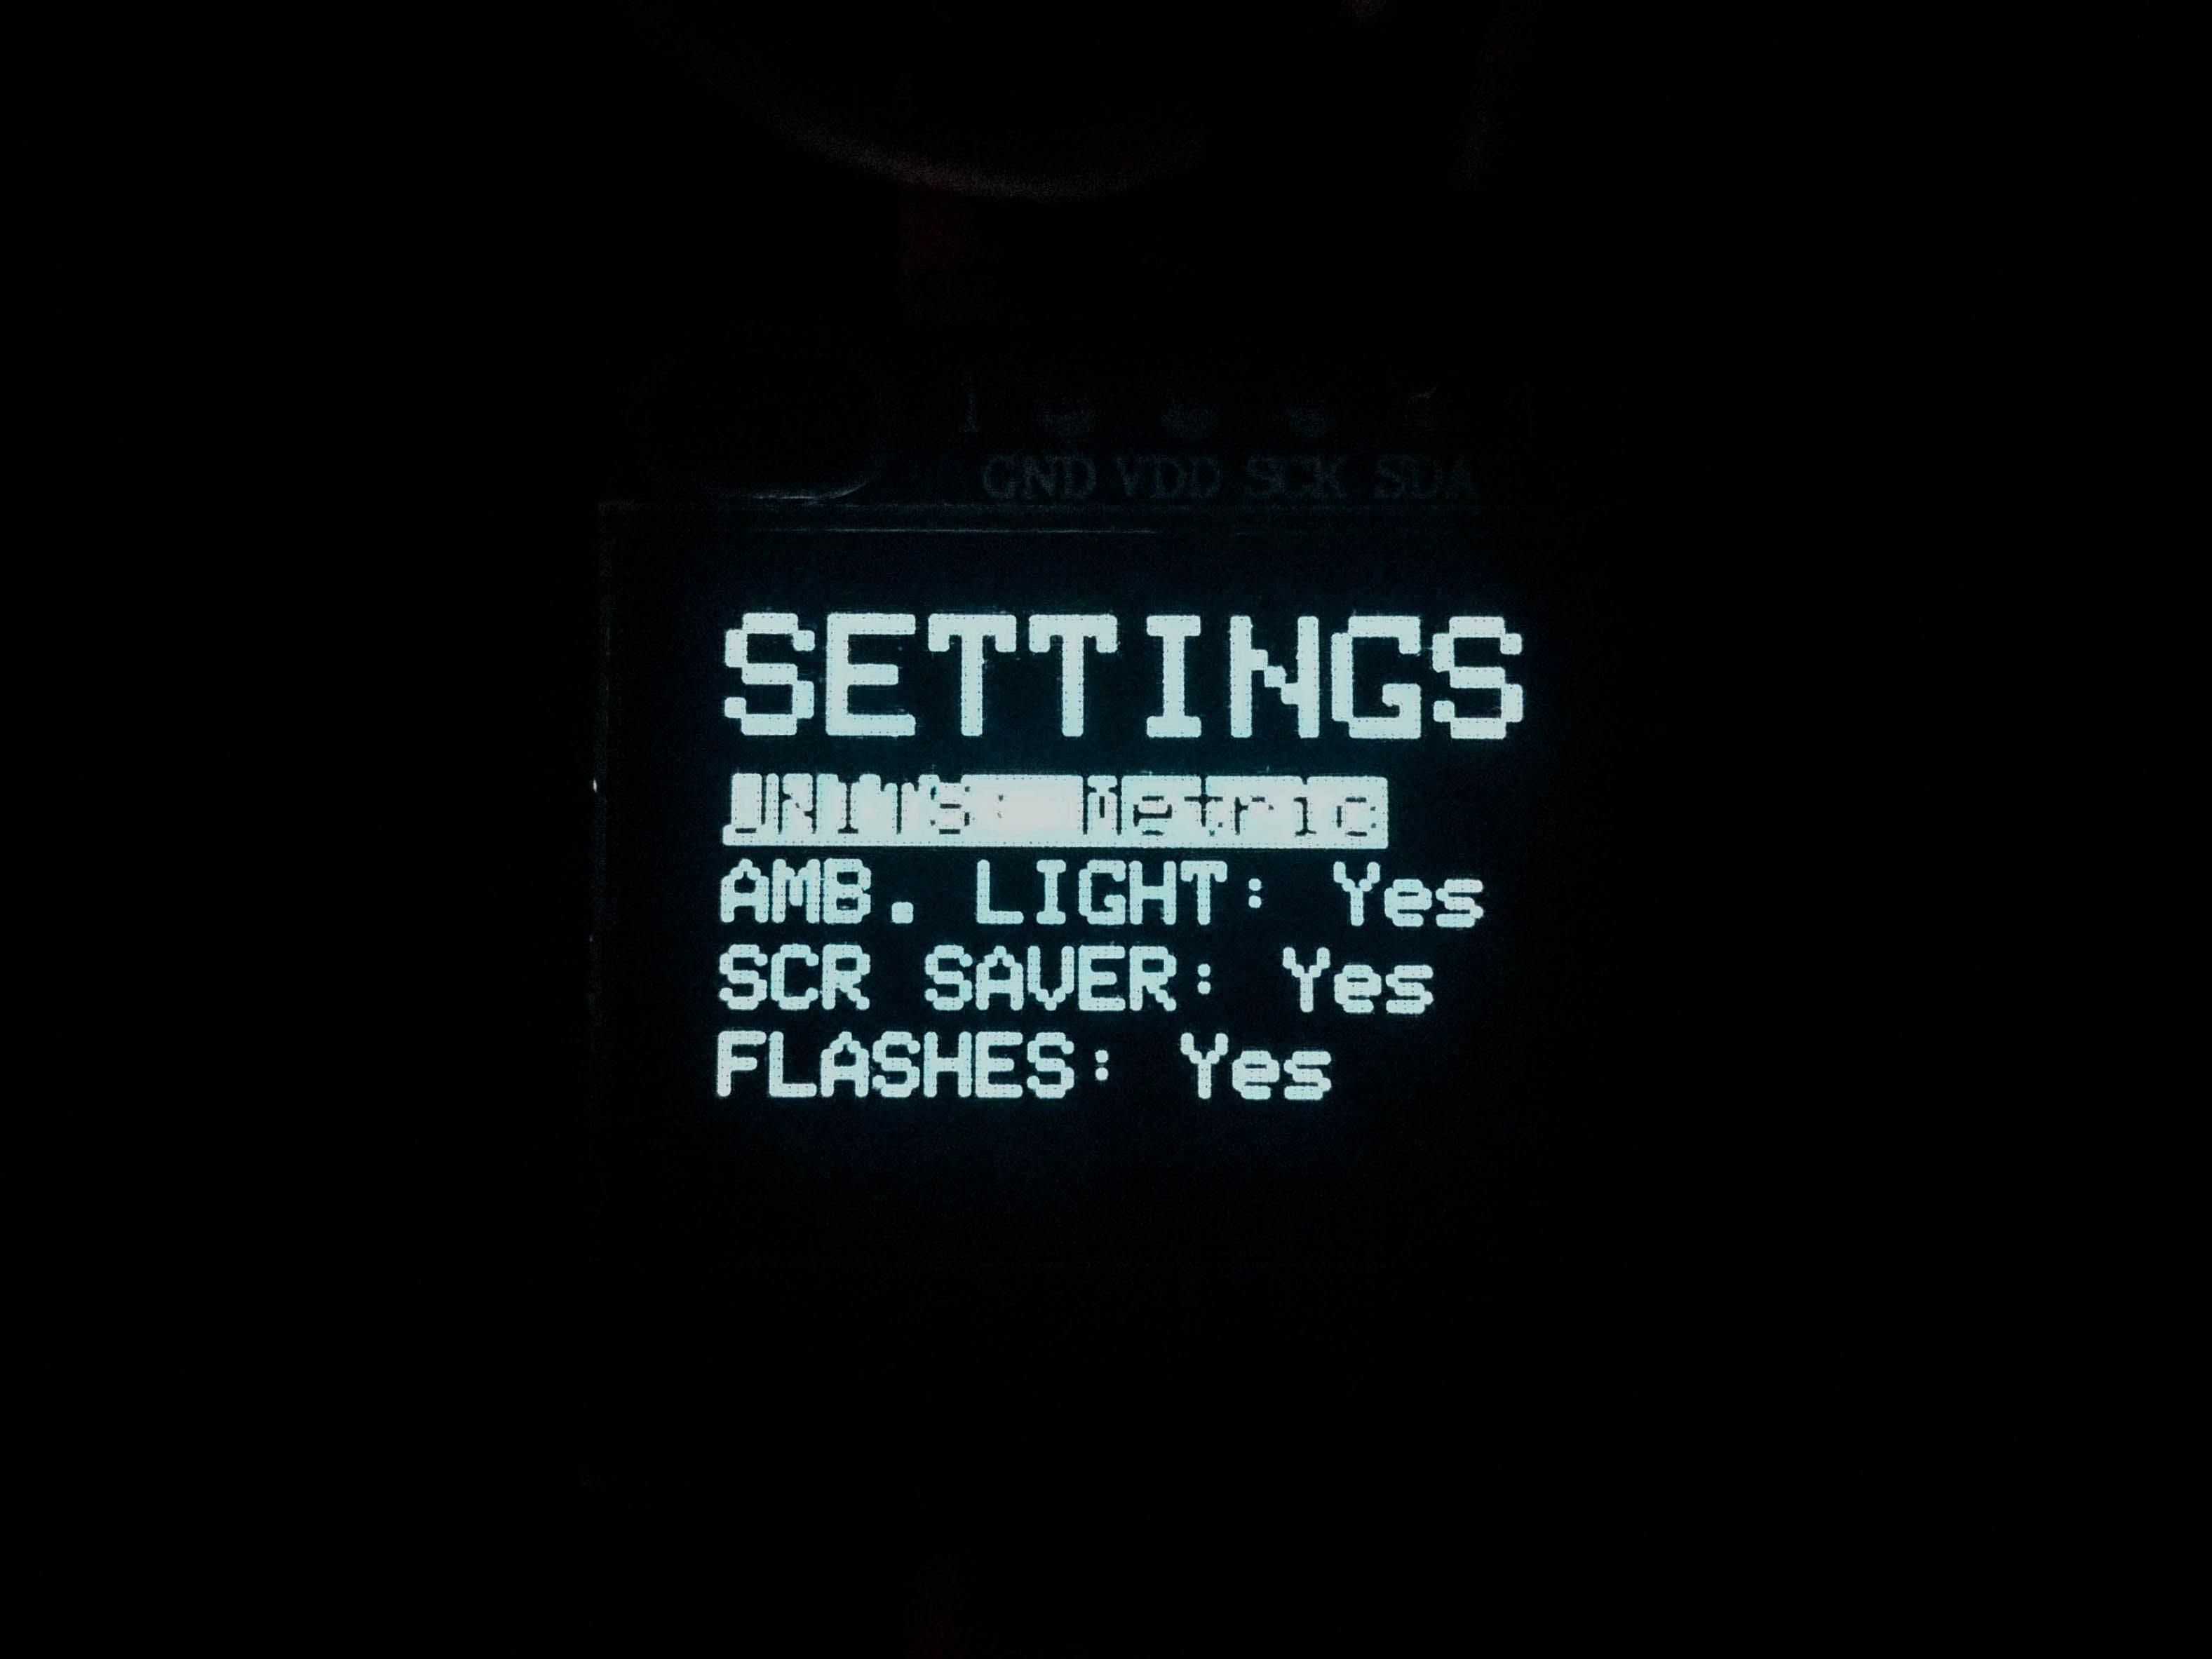 Settings display